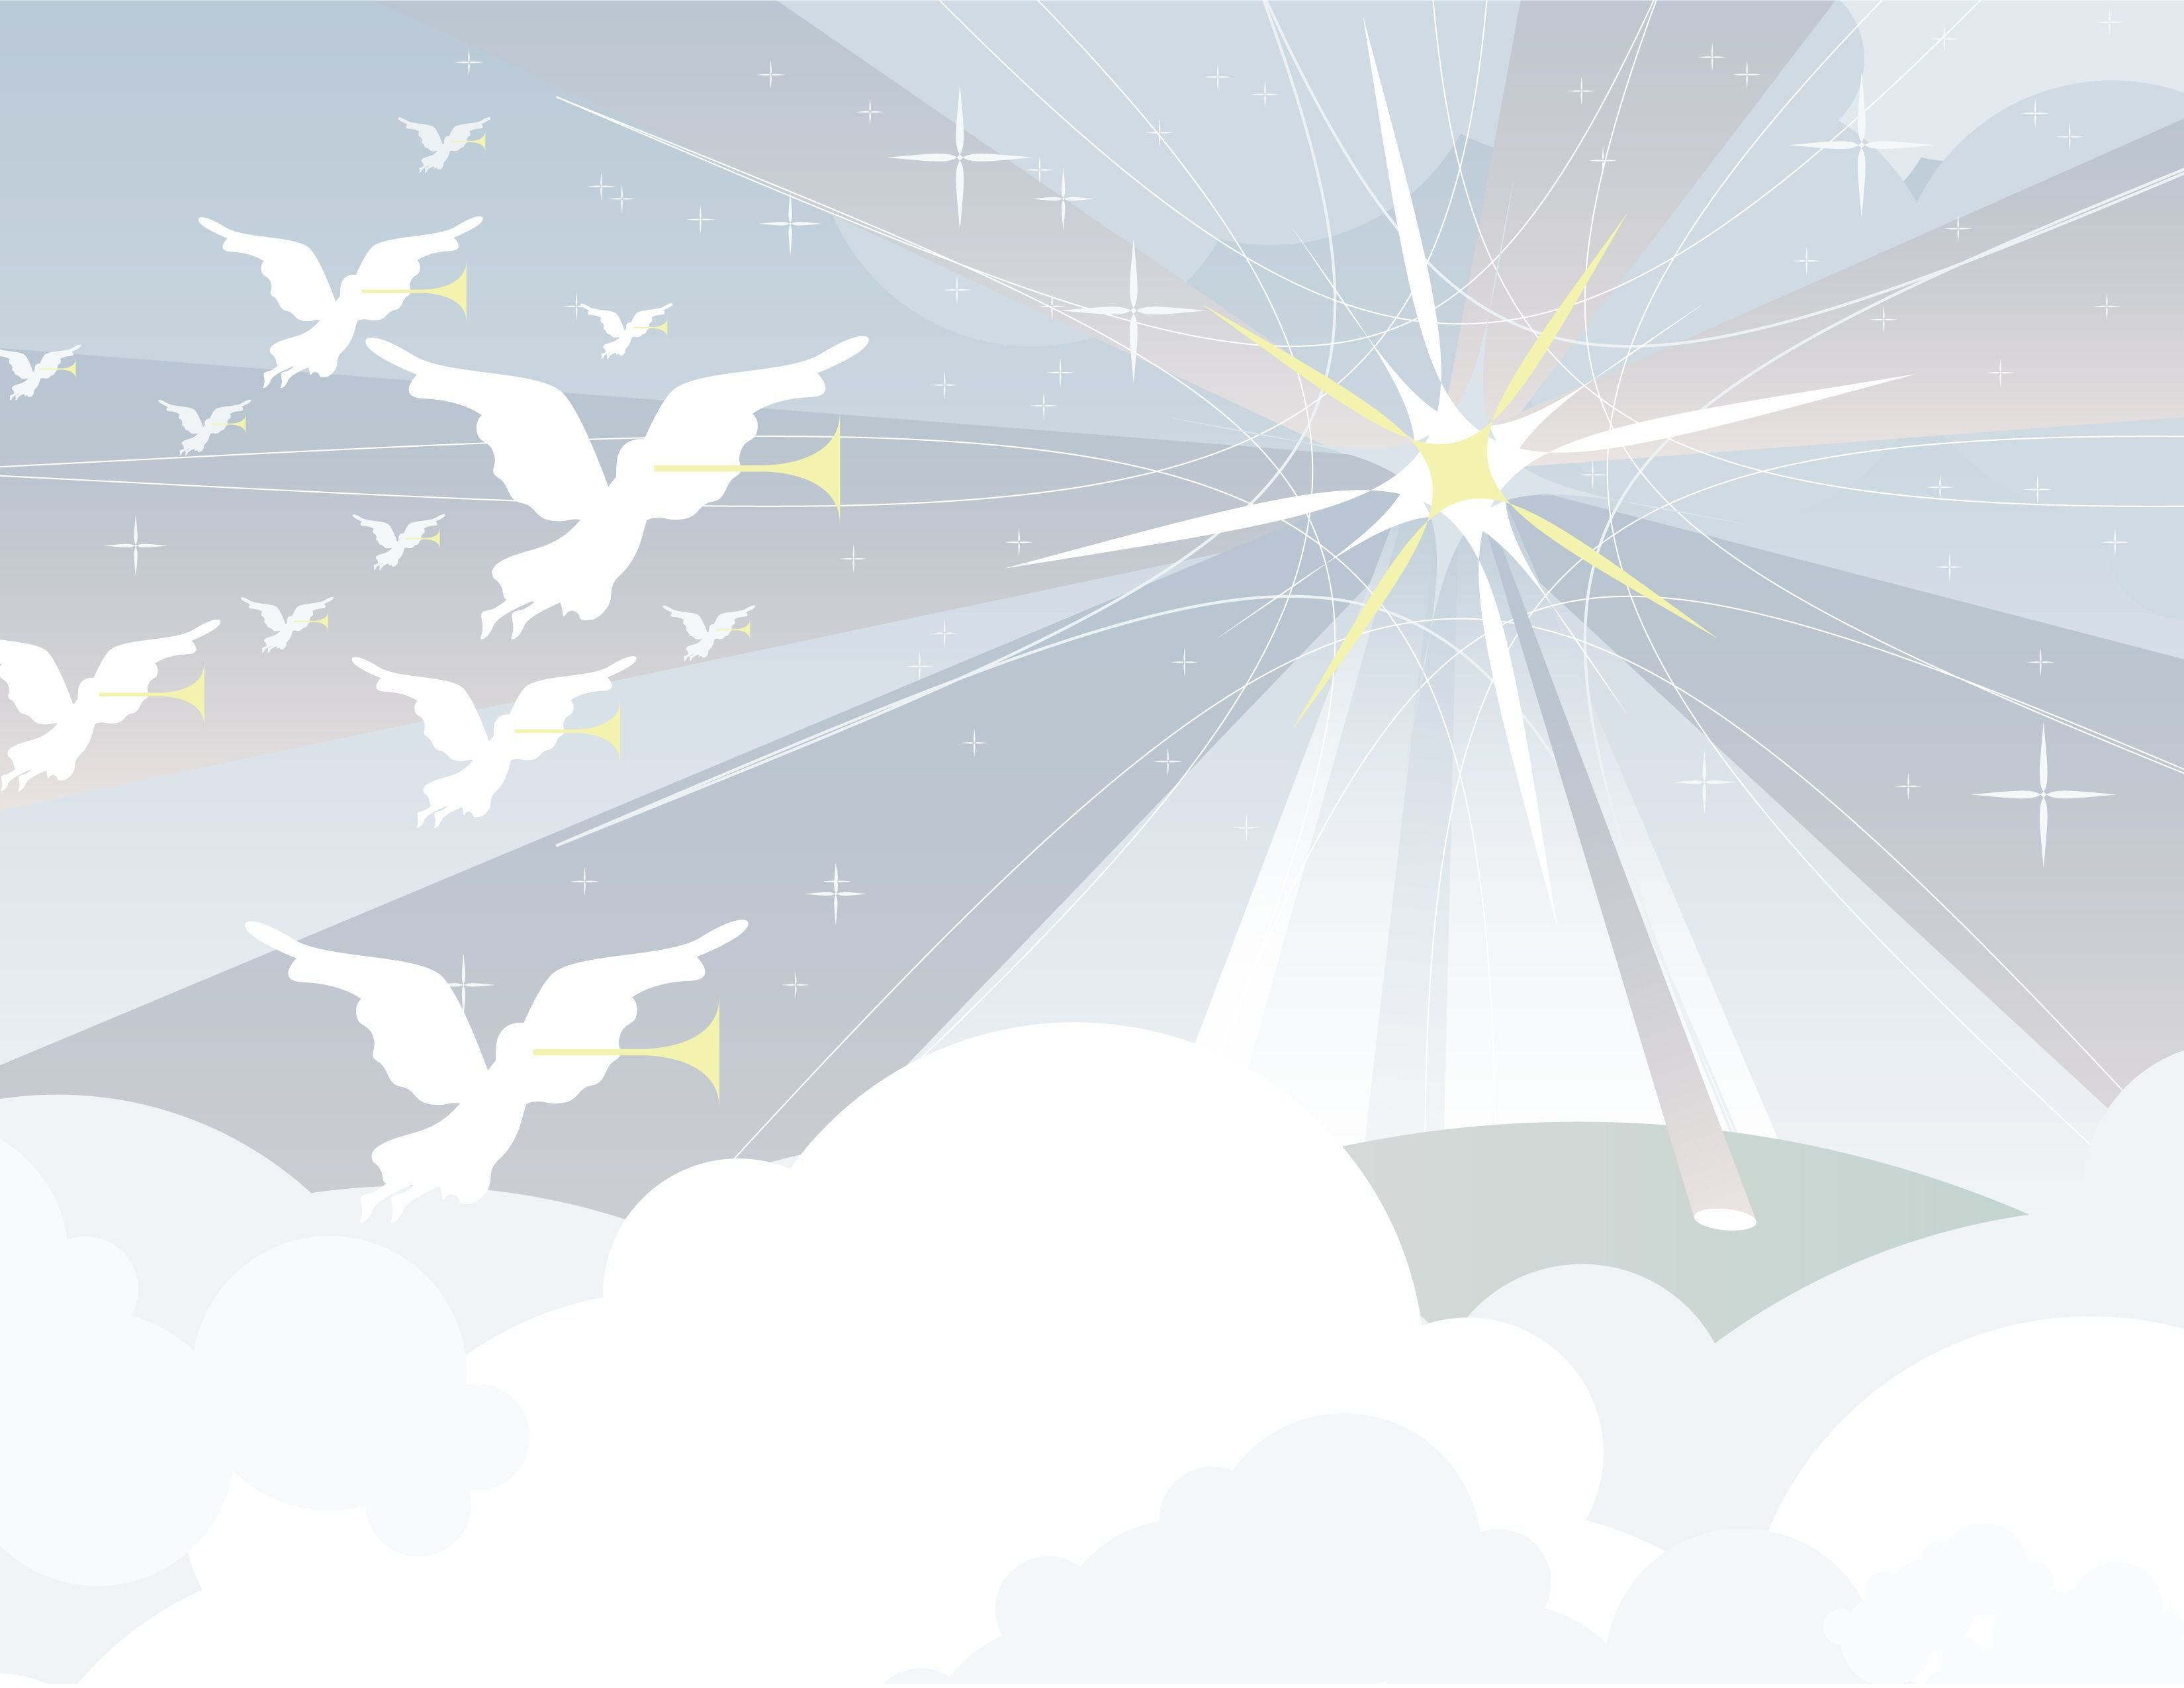 Memorial and Funeral Cards   Religious Backgrounds 2   MoMorialCards 3300x2550